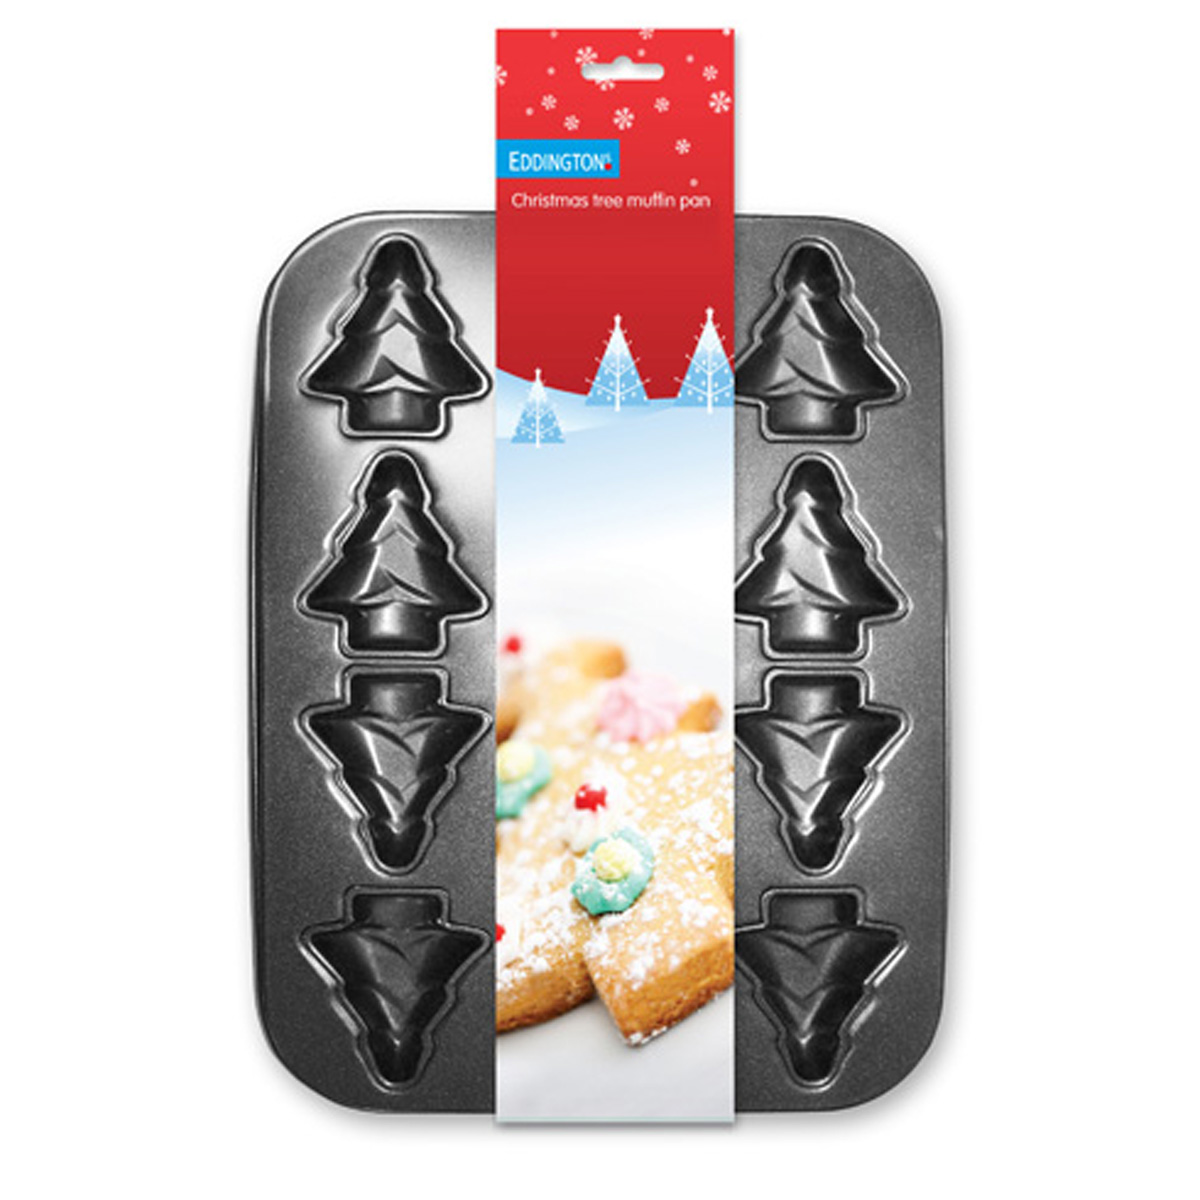 Christmas Tree Shaped Cake Pan